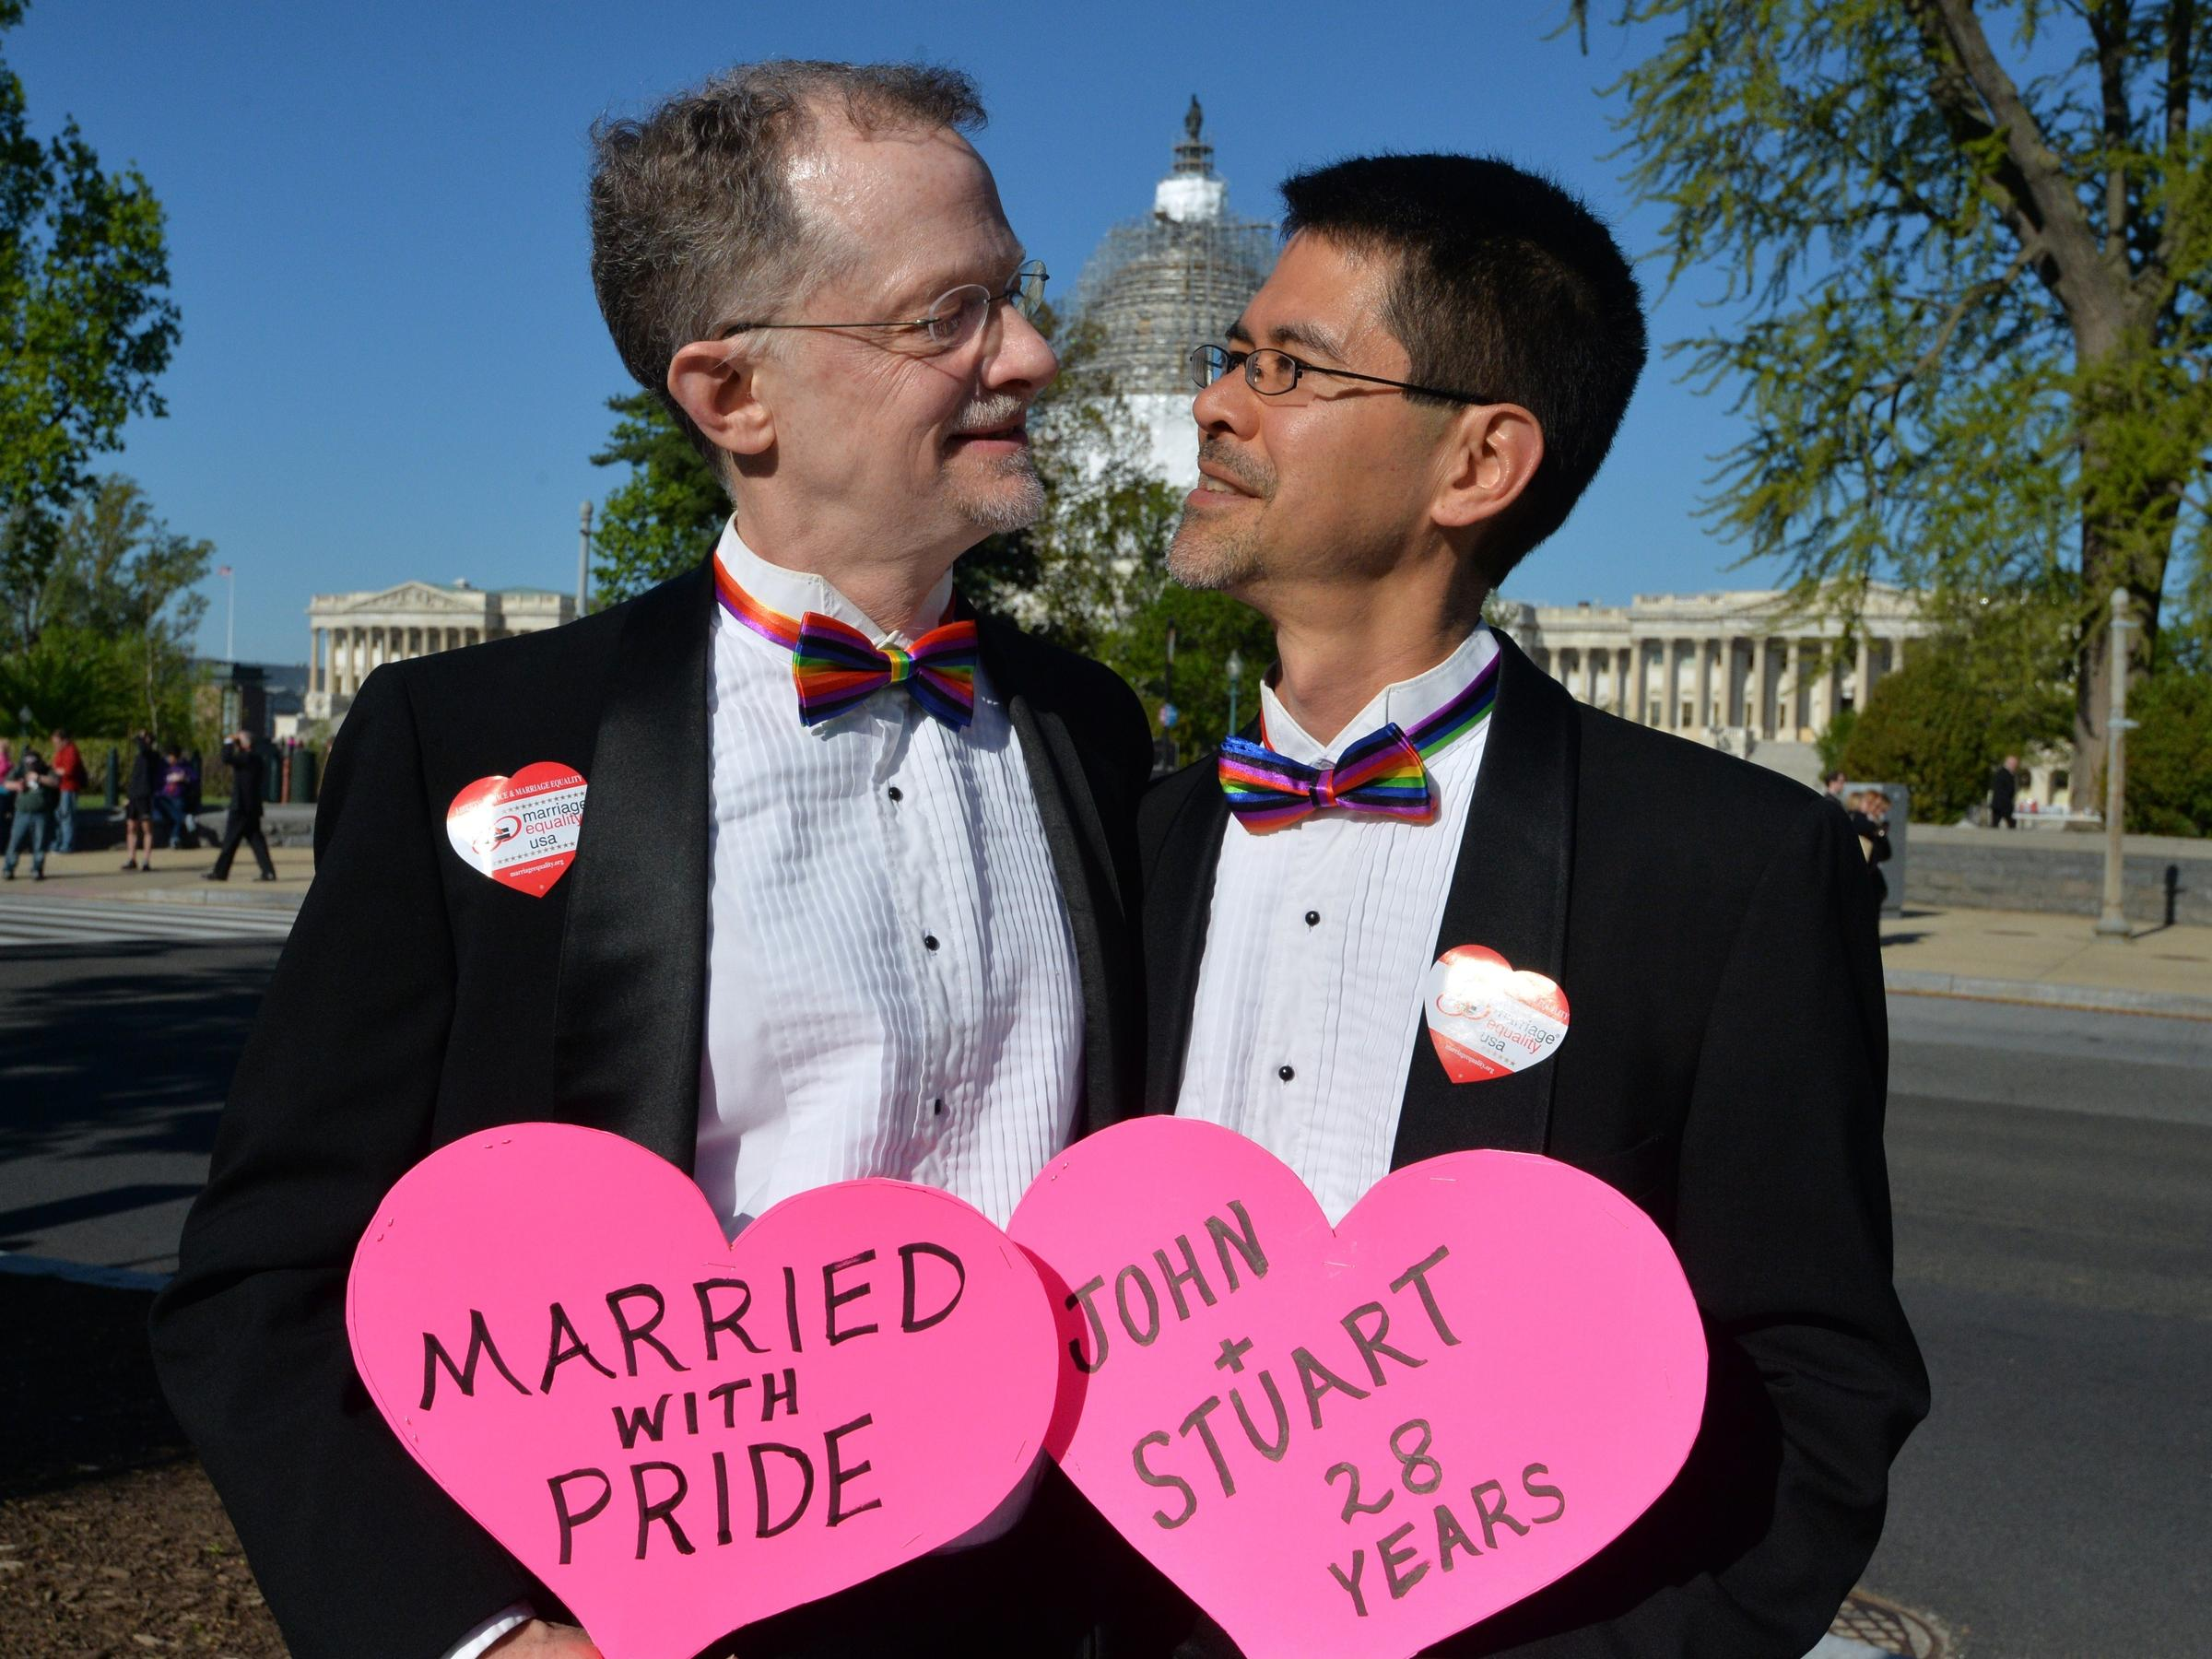 gay marrige The gay movement, whether we acknowledge it or not, is not a civil rights movement, not even a sexual liberation movement.